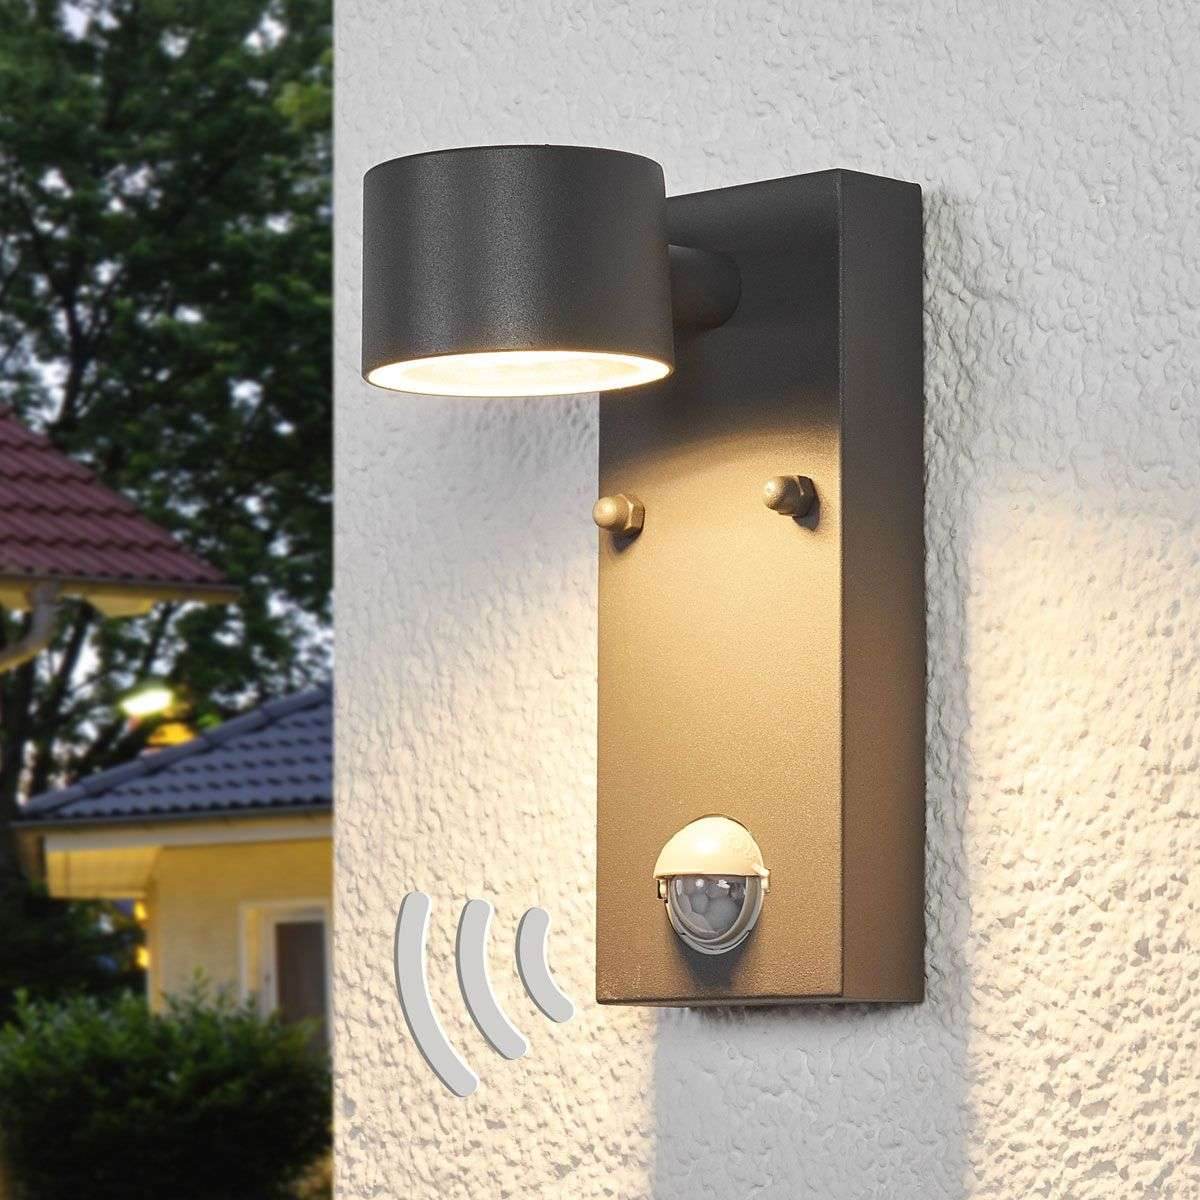 Outdoor Led Wall Light Lexi With A Sensor